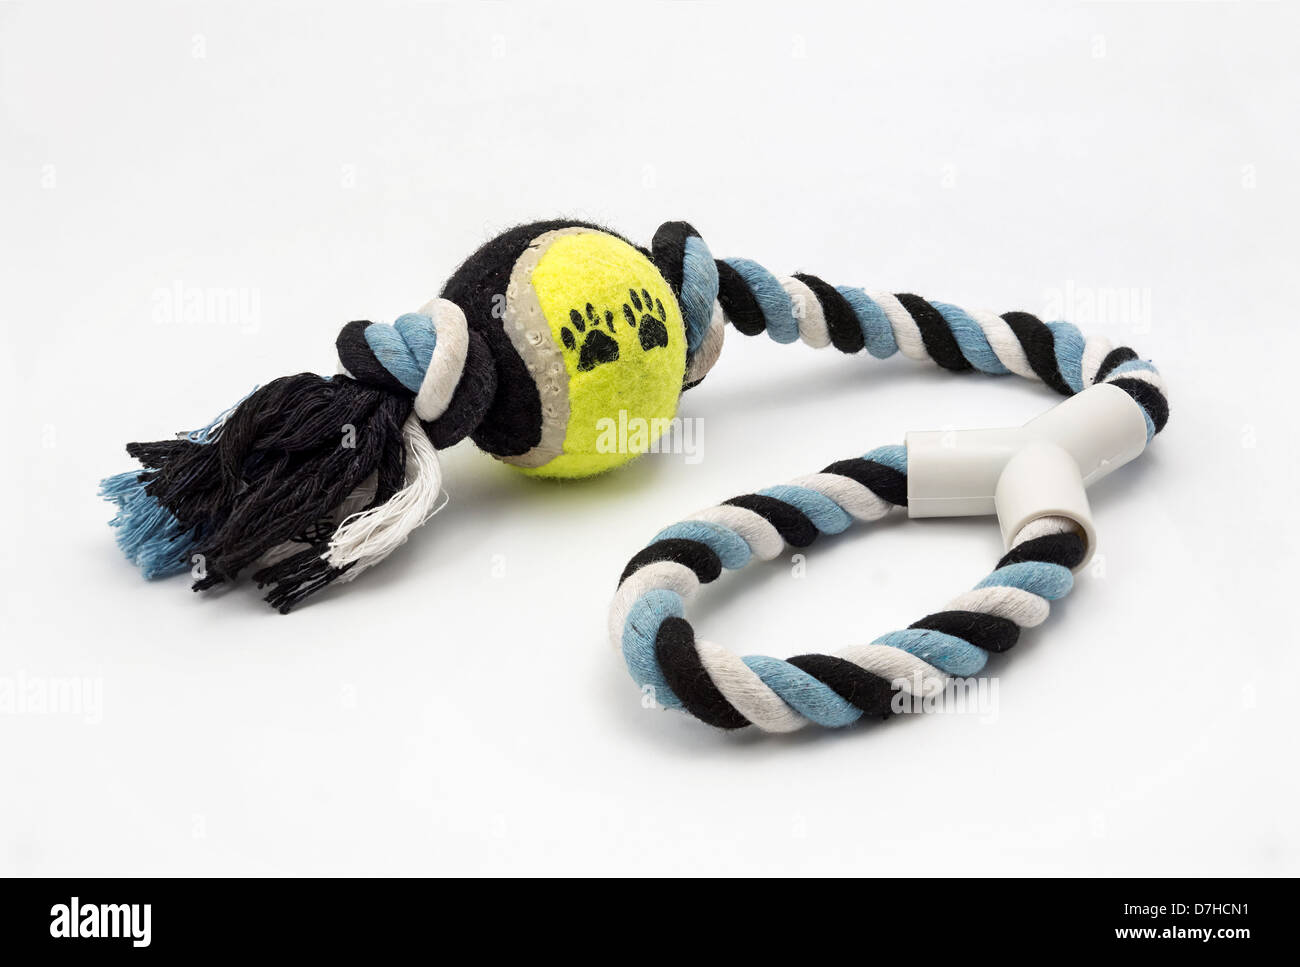 Ball and rope pulling toy for a dog - Stock Image